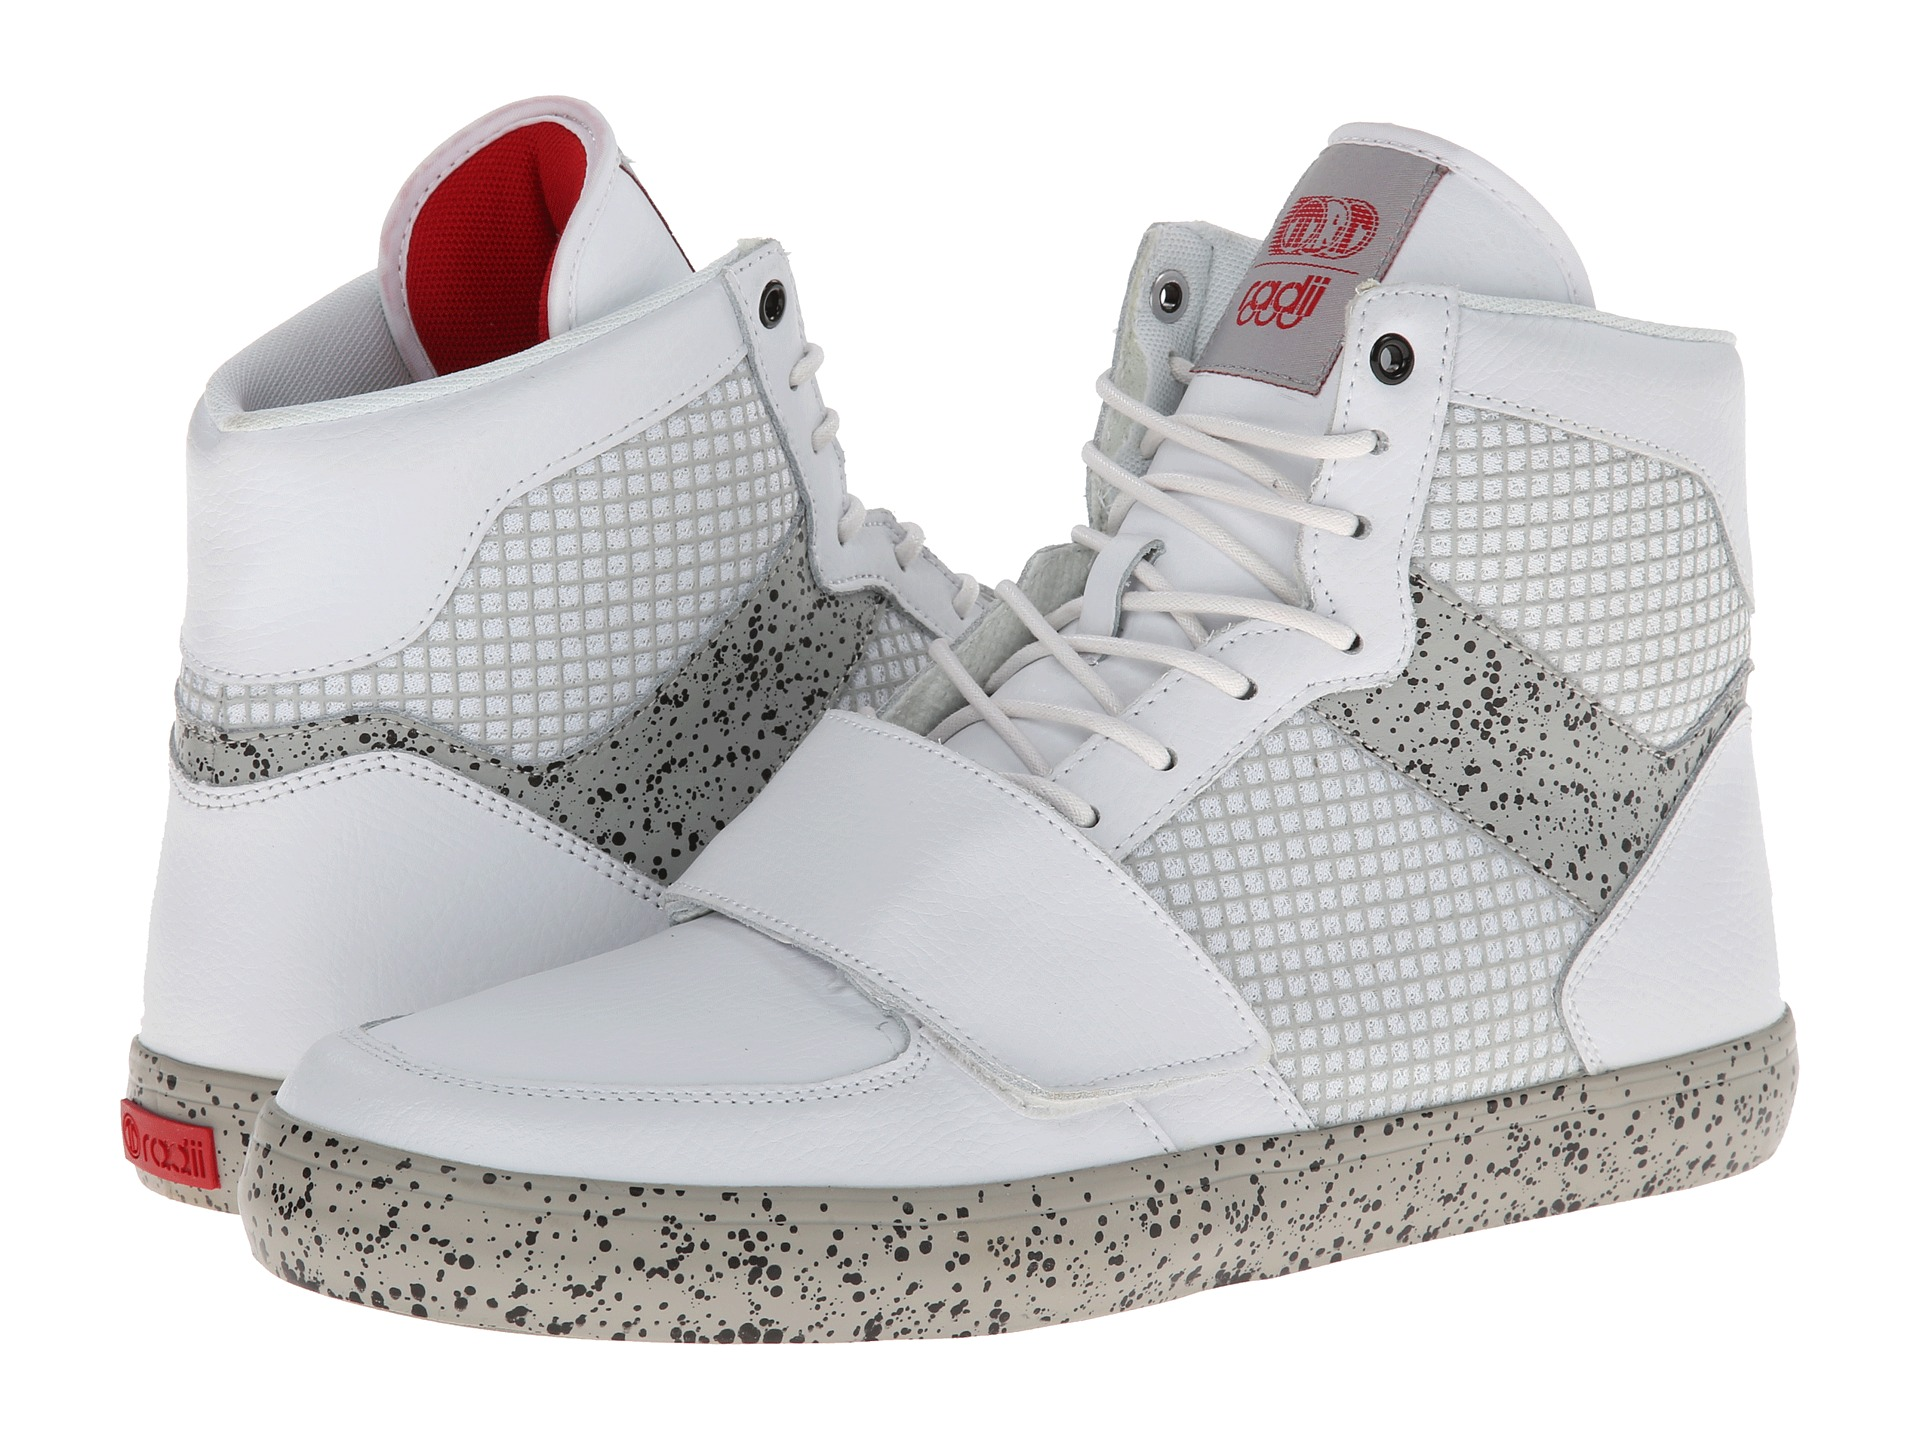 radii footwear standard issue se shoes shipped free at